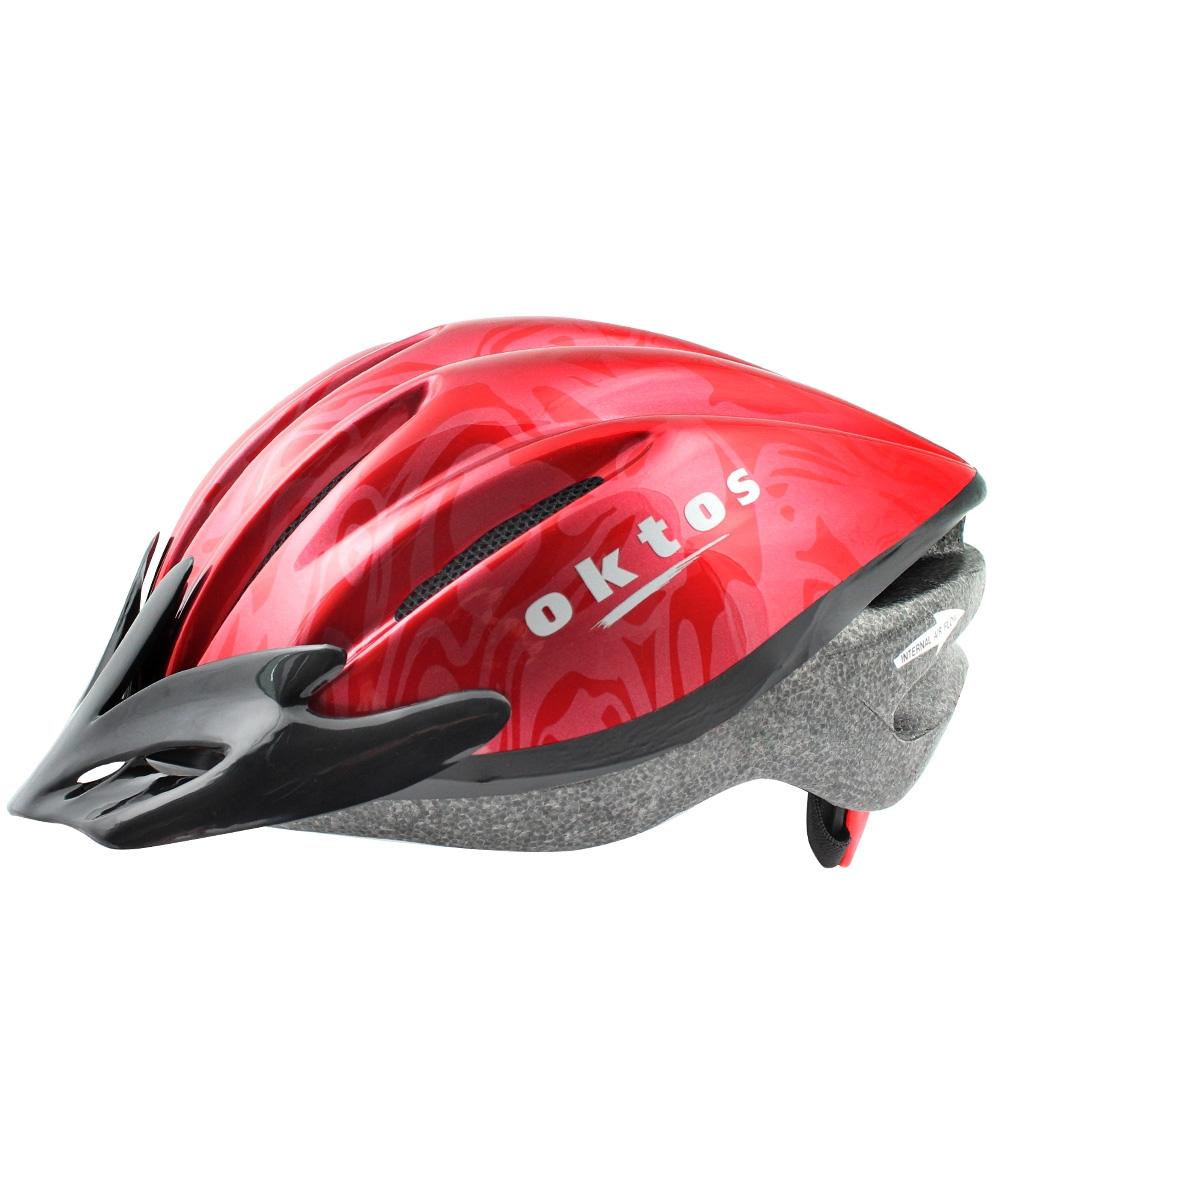 Casque vélo Adulte Oktos V16 Rouge - XL